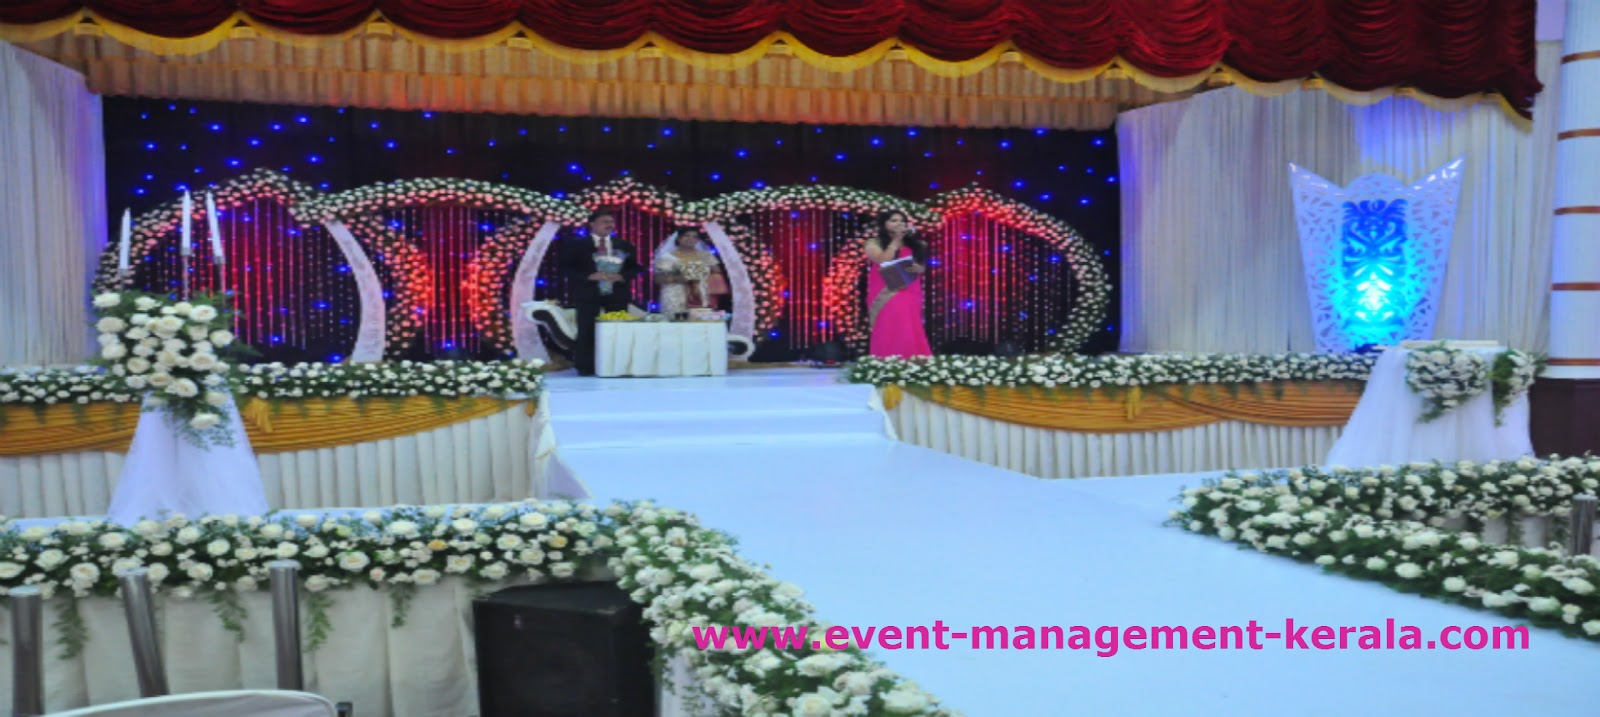 Melodia event management kerala event management and wedding wedding event management in thrissur junglespirit